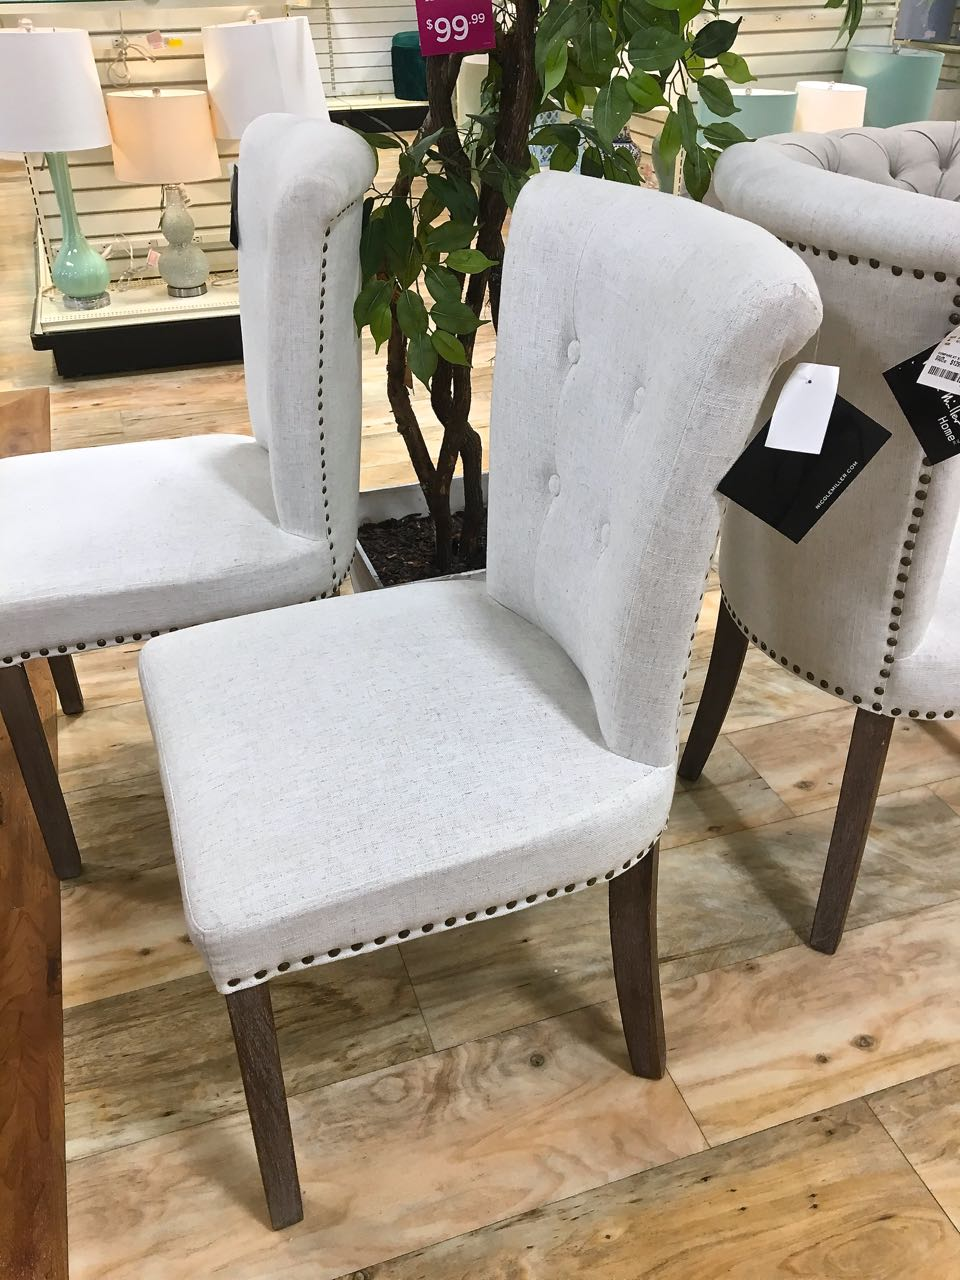 Find home goods furniture from a vast selection of Chairs. Get great deals on eBay!